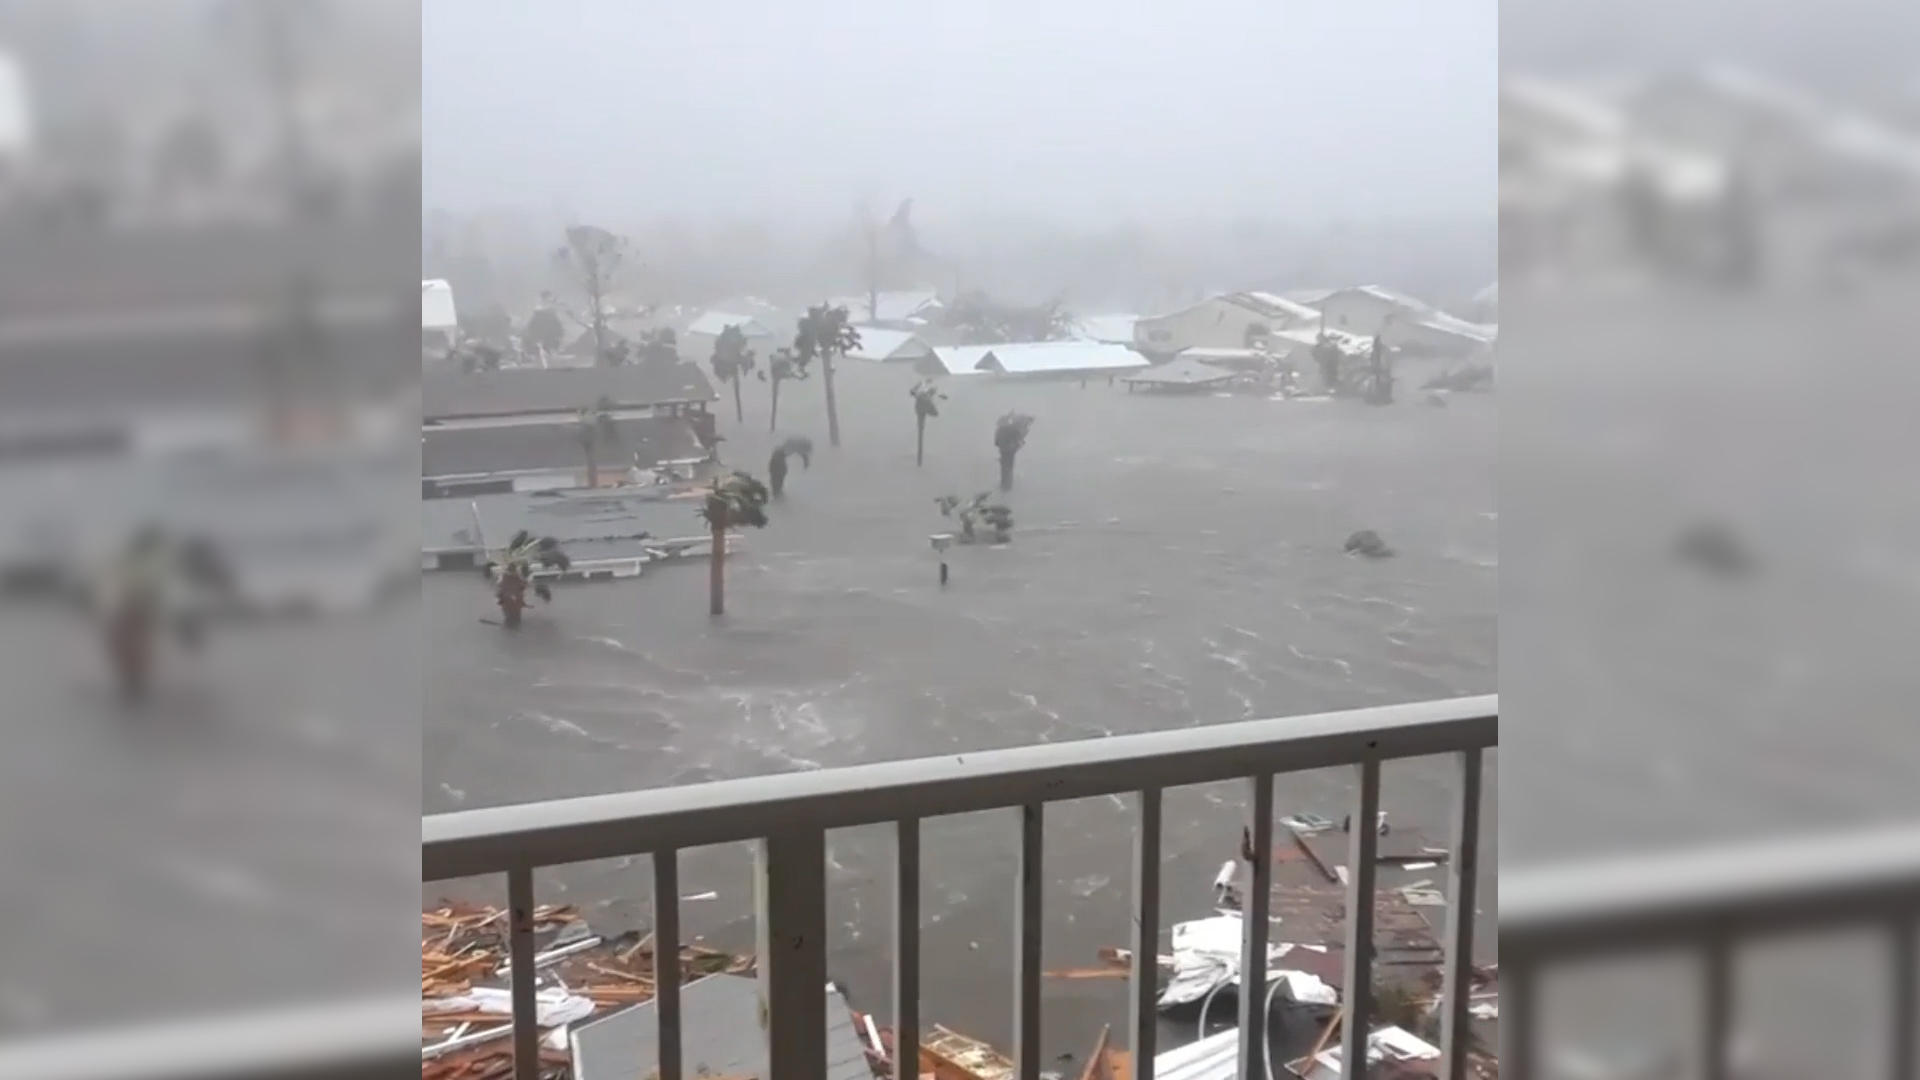 Hurricane death toll climbs in Florida as officials get into most devastated areas